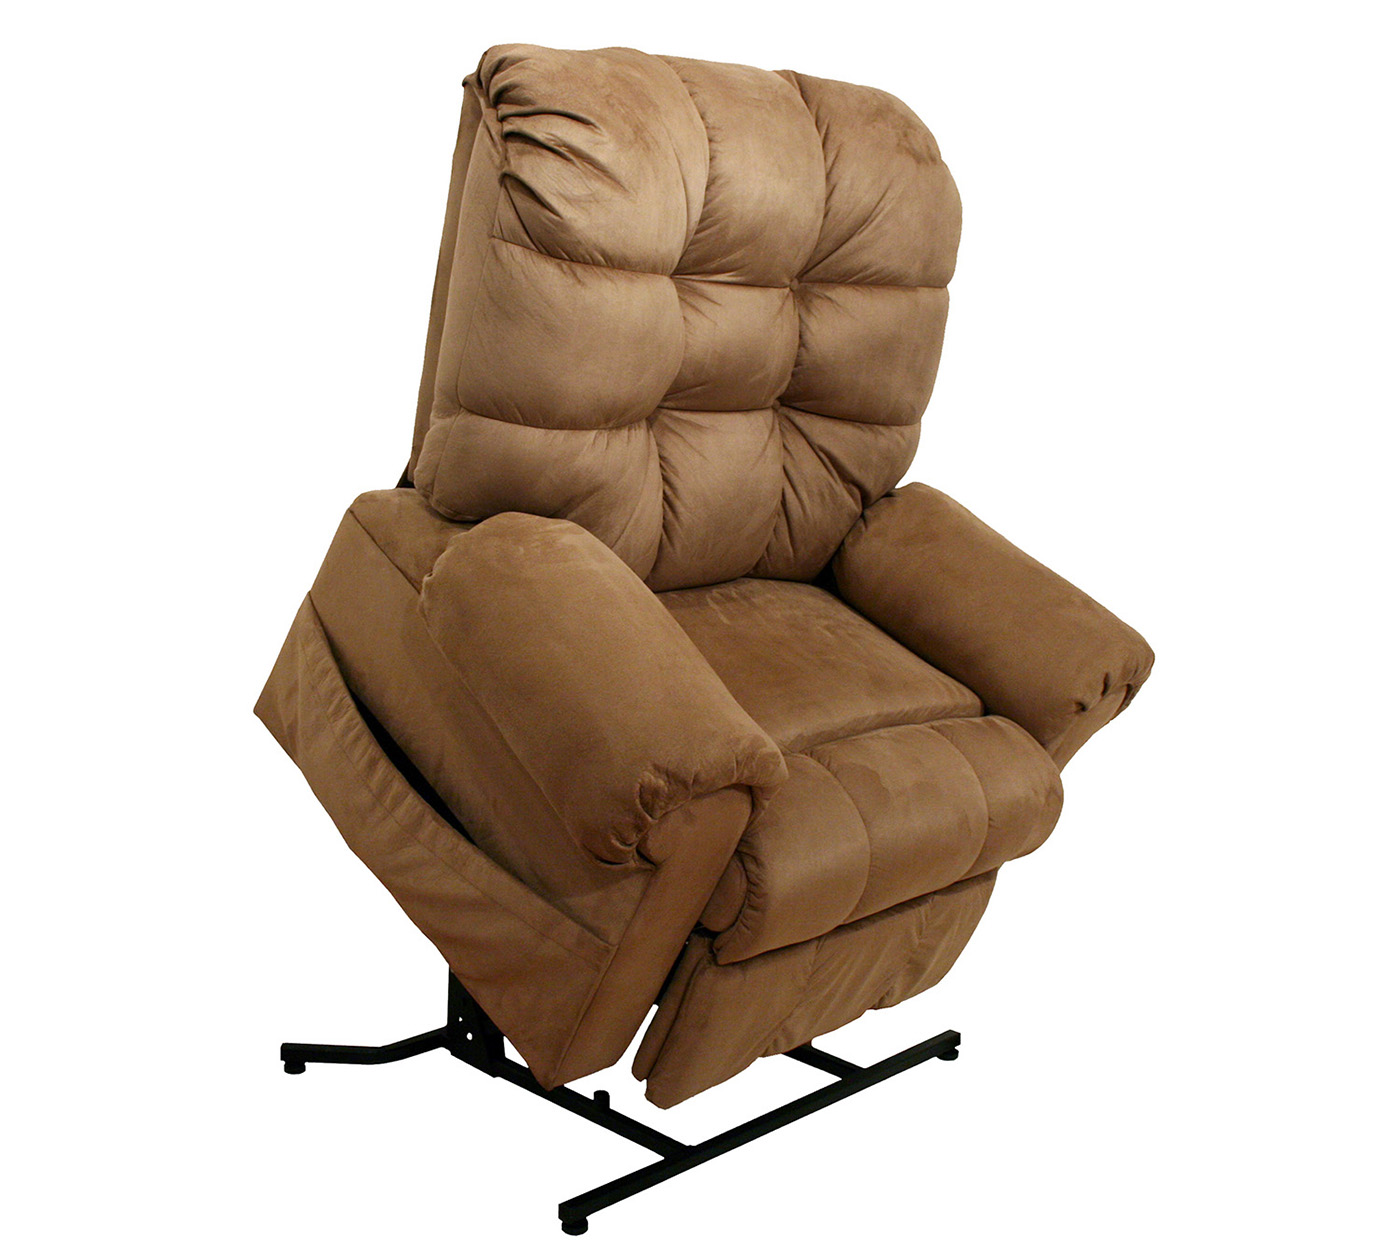 Catnapper omni 4827 power lift chair recliner lounger to for Catnapper chaise